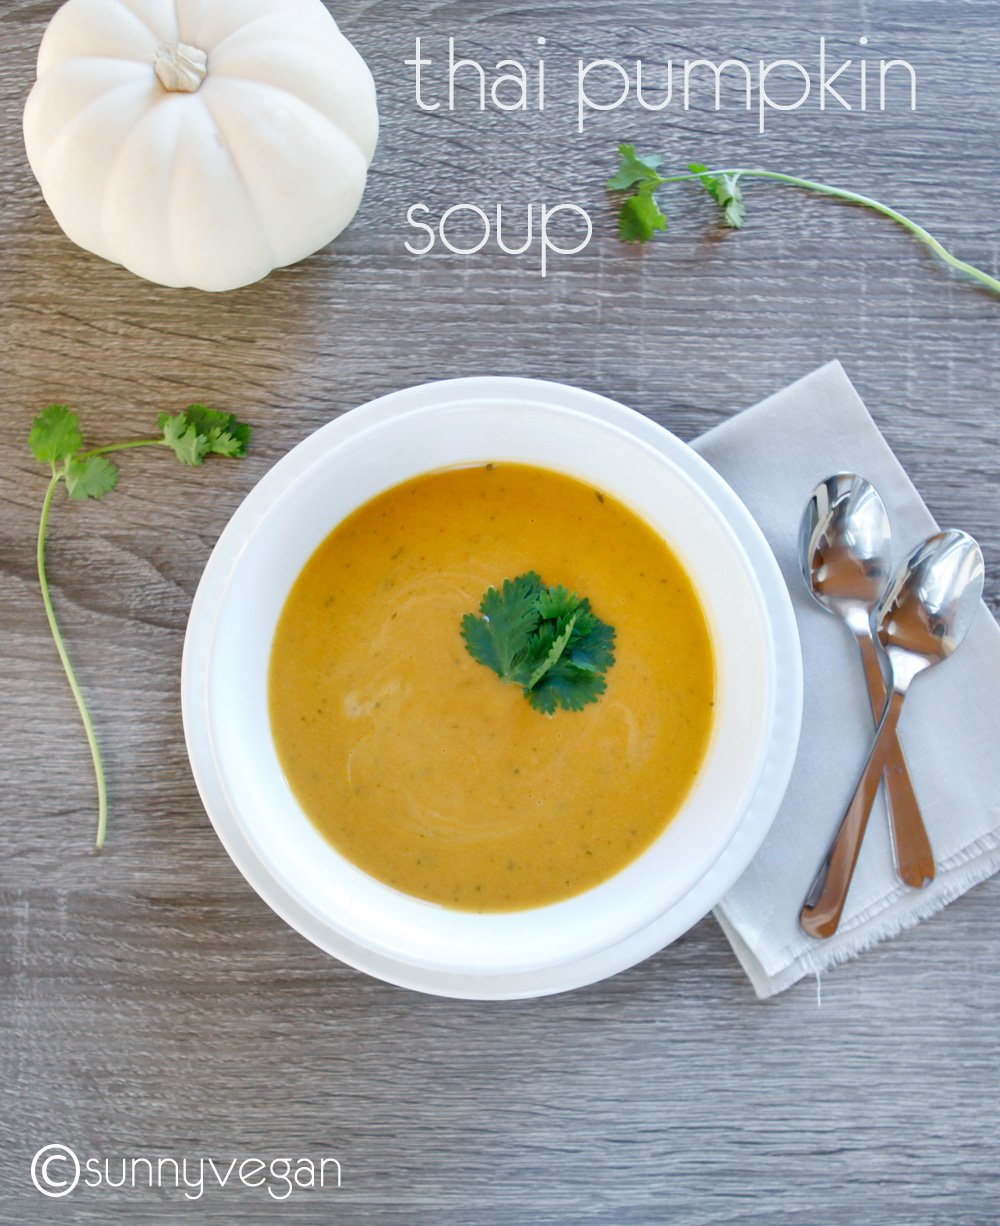 thai pumpkin soup recipe from sunny vegan